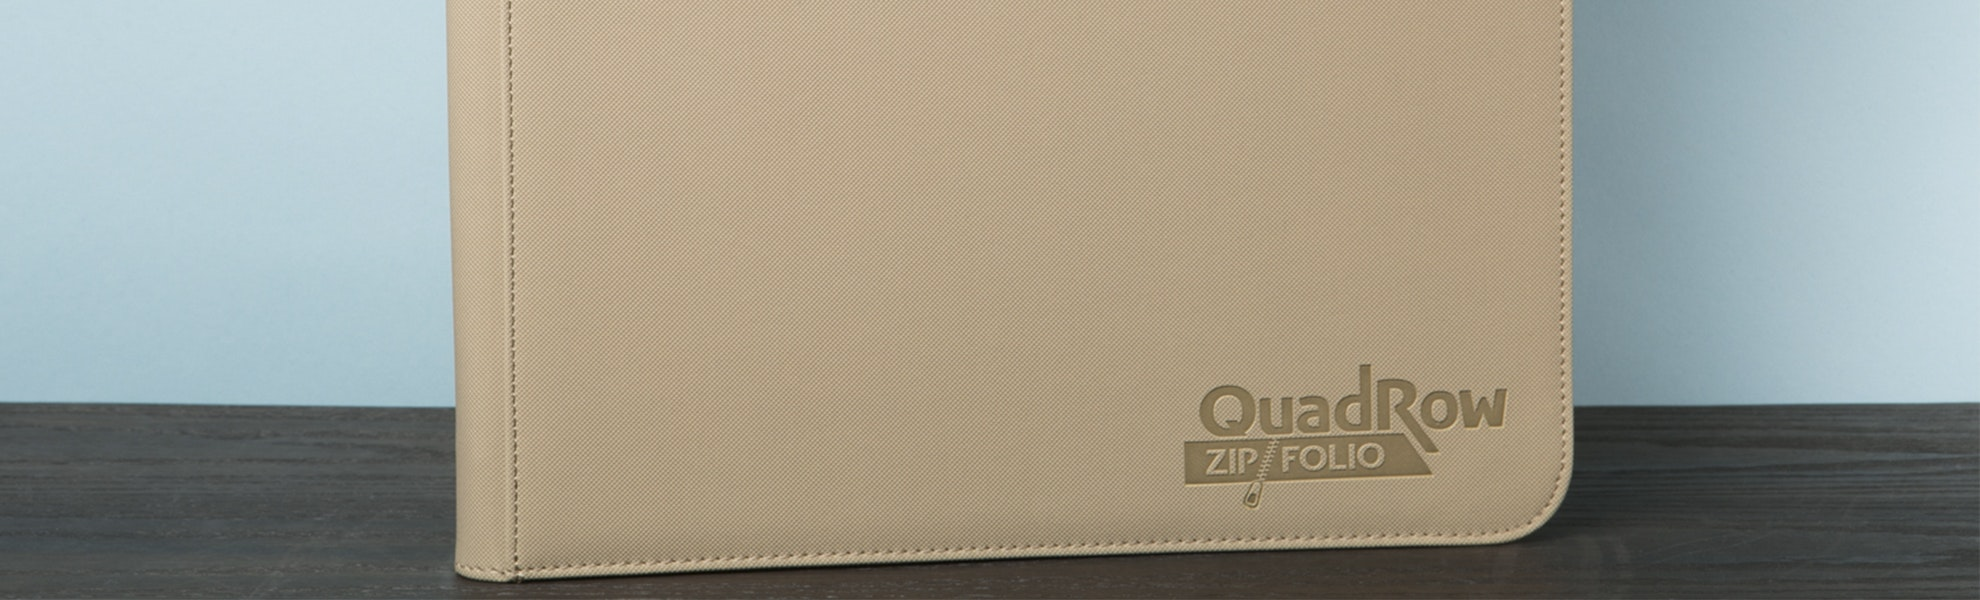 Ultimate Guard QuadRow Zipfolio